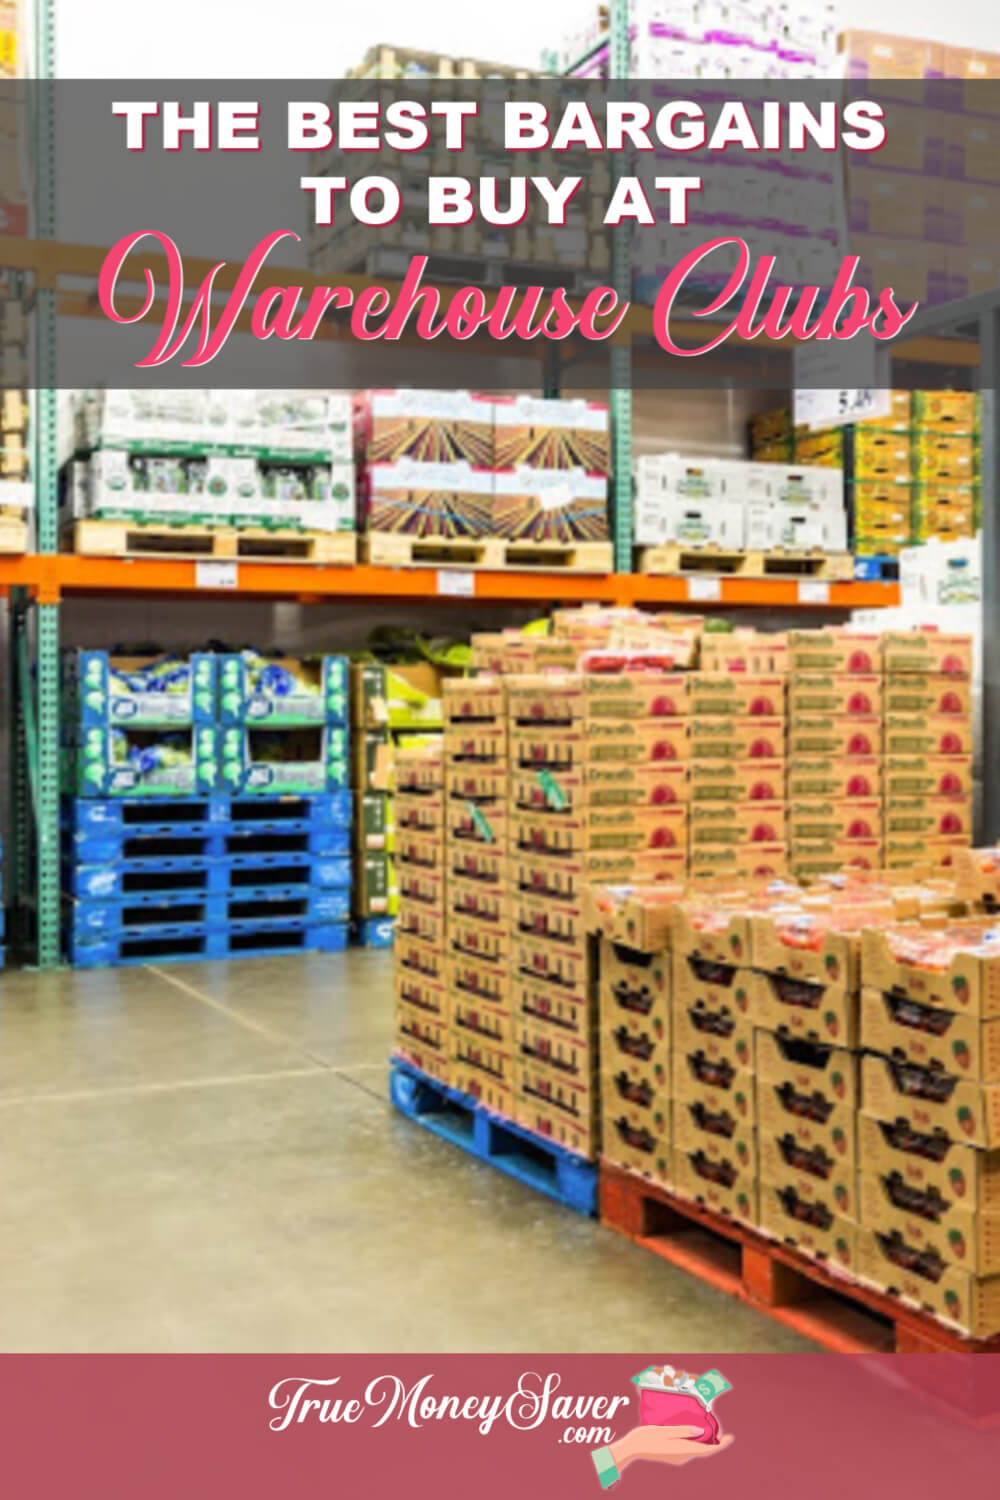 There are 10 items you should always be buying at bulk foods stores. Know exactly what the best bargains are instead of worrying about overspending. #truemoneysaver #groceryshopping #savingmoney #warehouse #samsclub #costco #bulkfoods